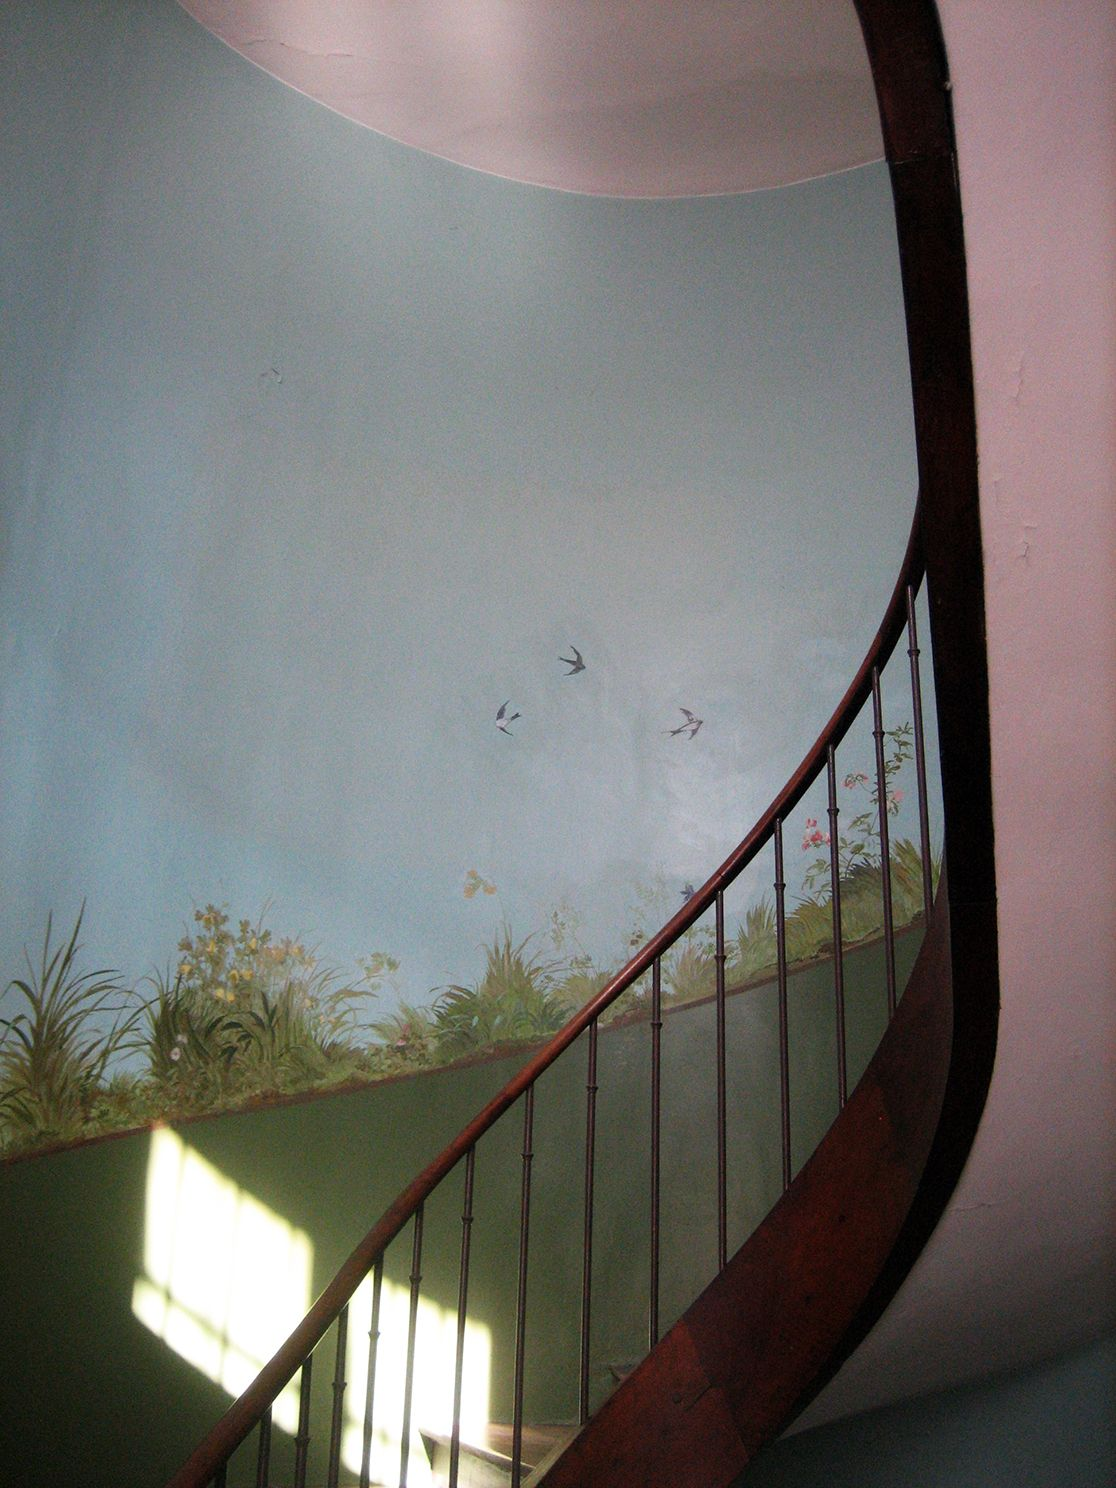 Decorated staircase. Nice to see flowers and birds when you are climbing the stairs